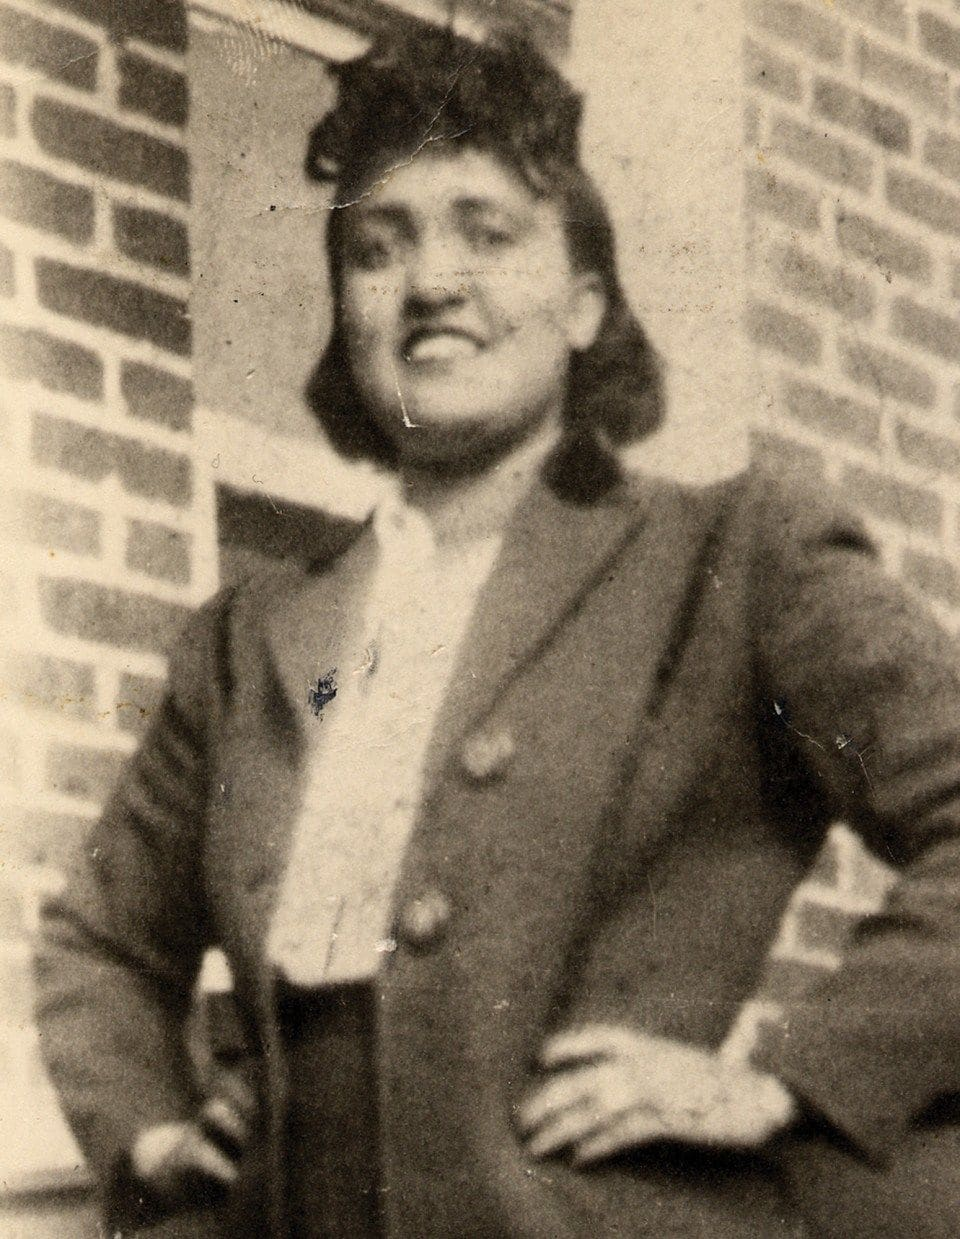 Henrietta Lacks in a 1940s photo. (Lacks family/Henrietta Lacks Foundation/AP)